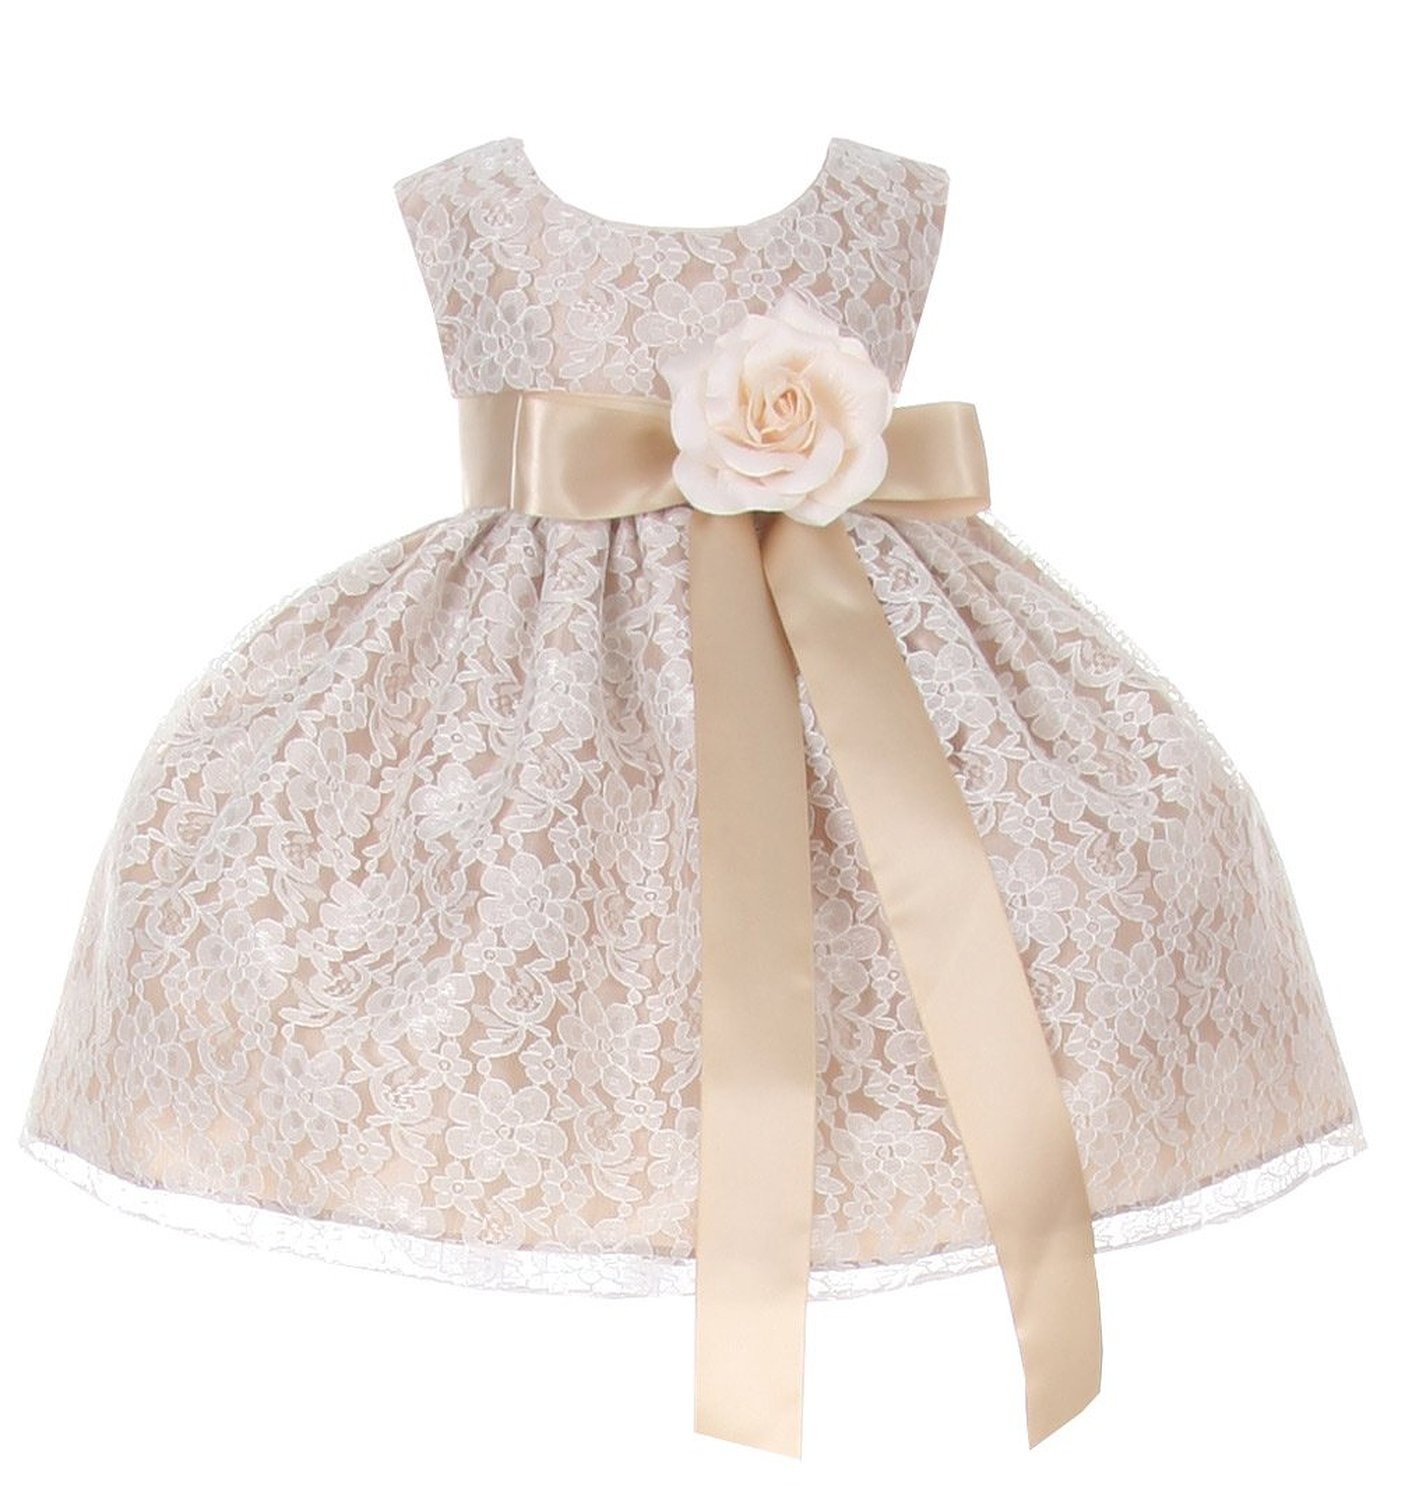 flower girl dresses, flower girl dress, cheap flower girl dresses, ivory flower girl dresses, girls party dresses